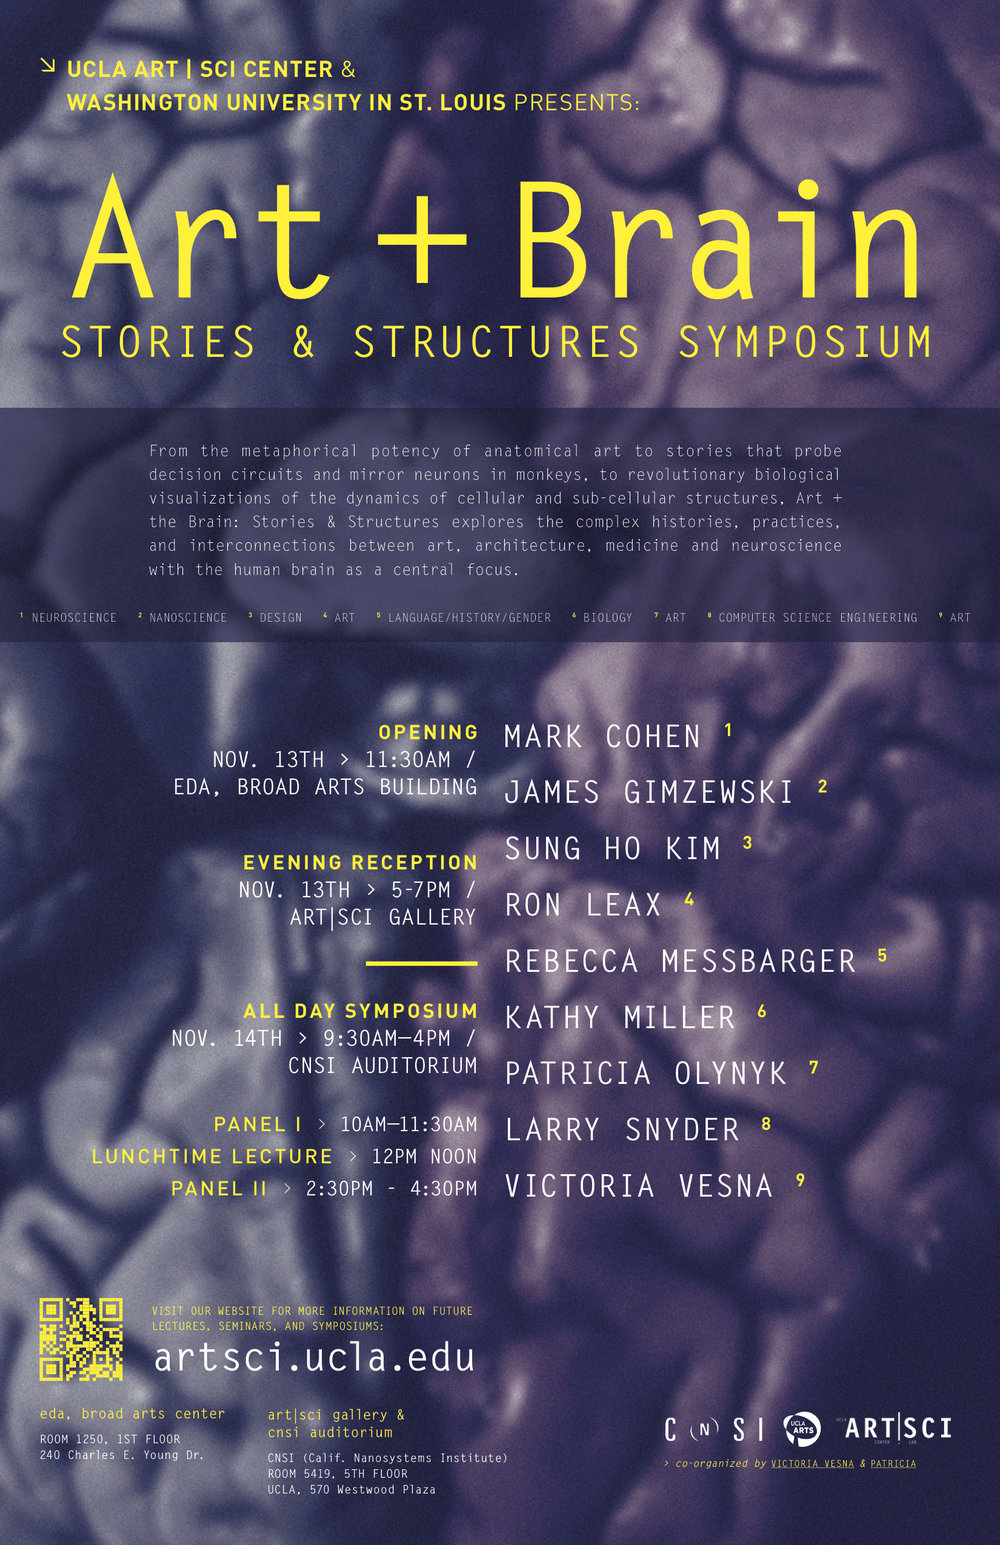 9. ART+BRAIN SYMPOSIUM 2014.jpg